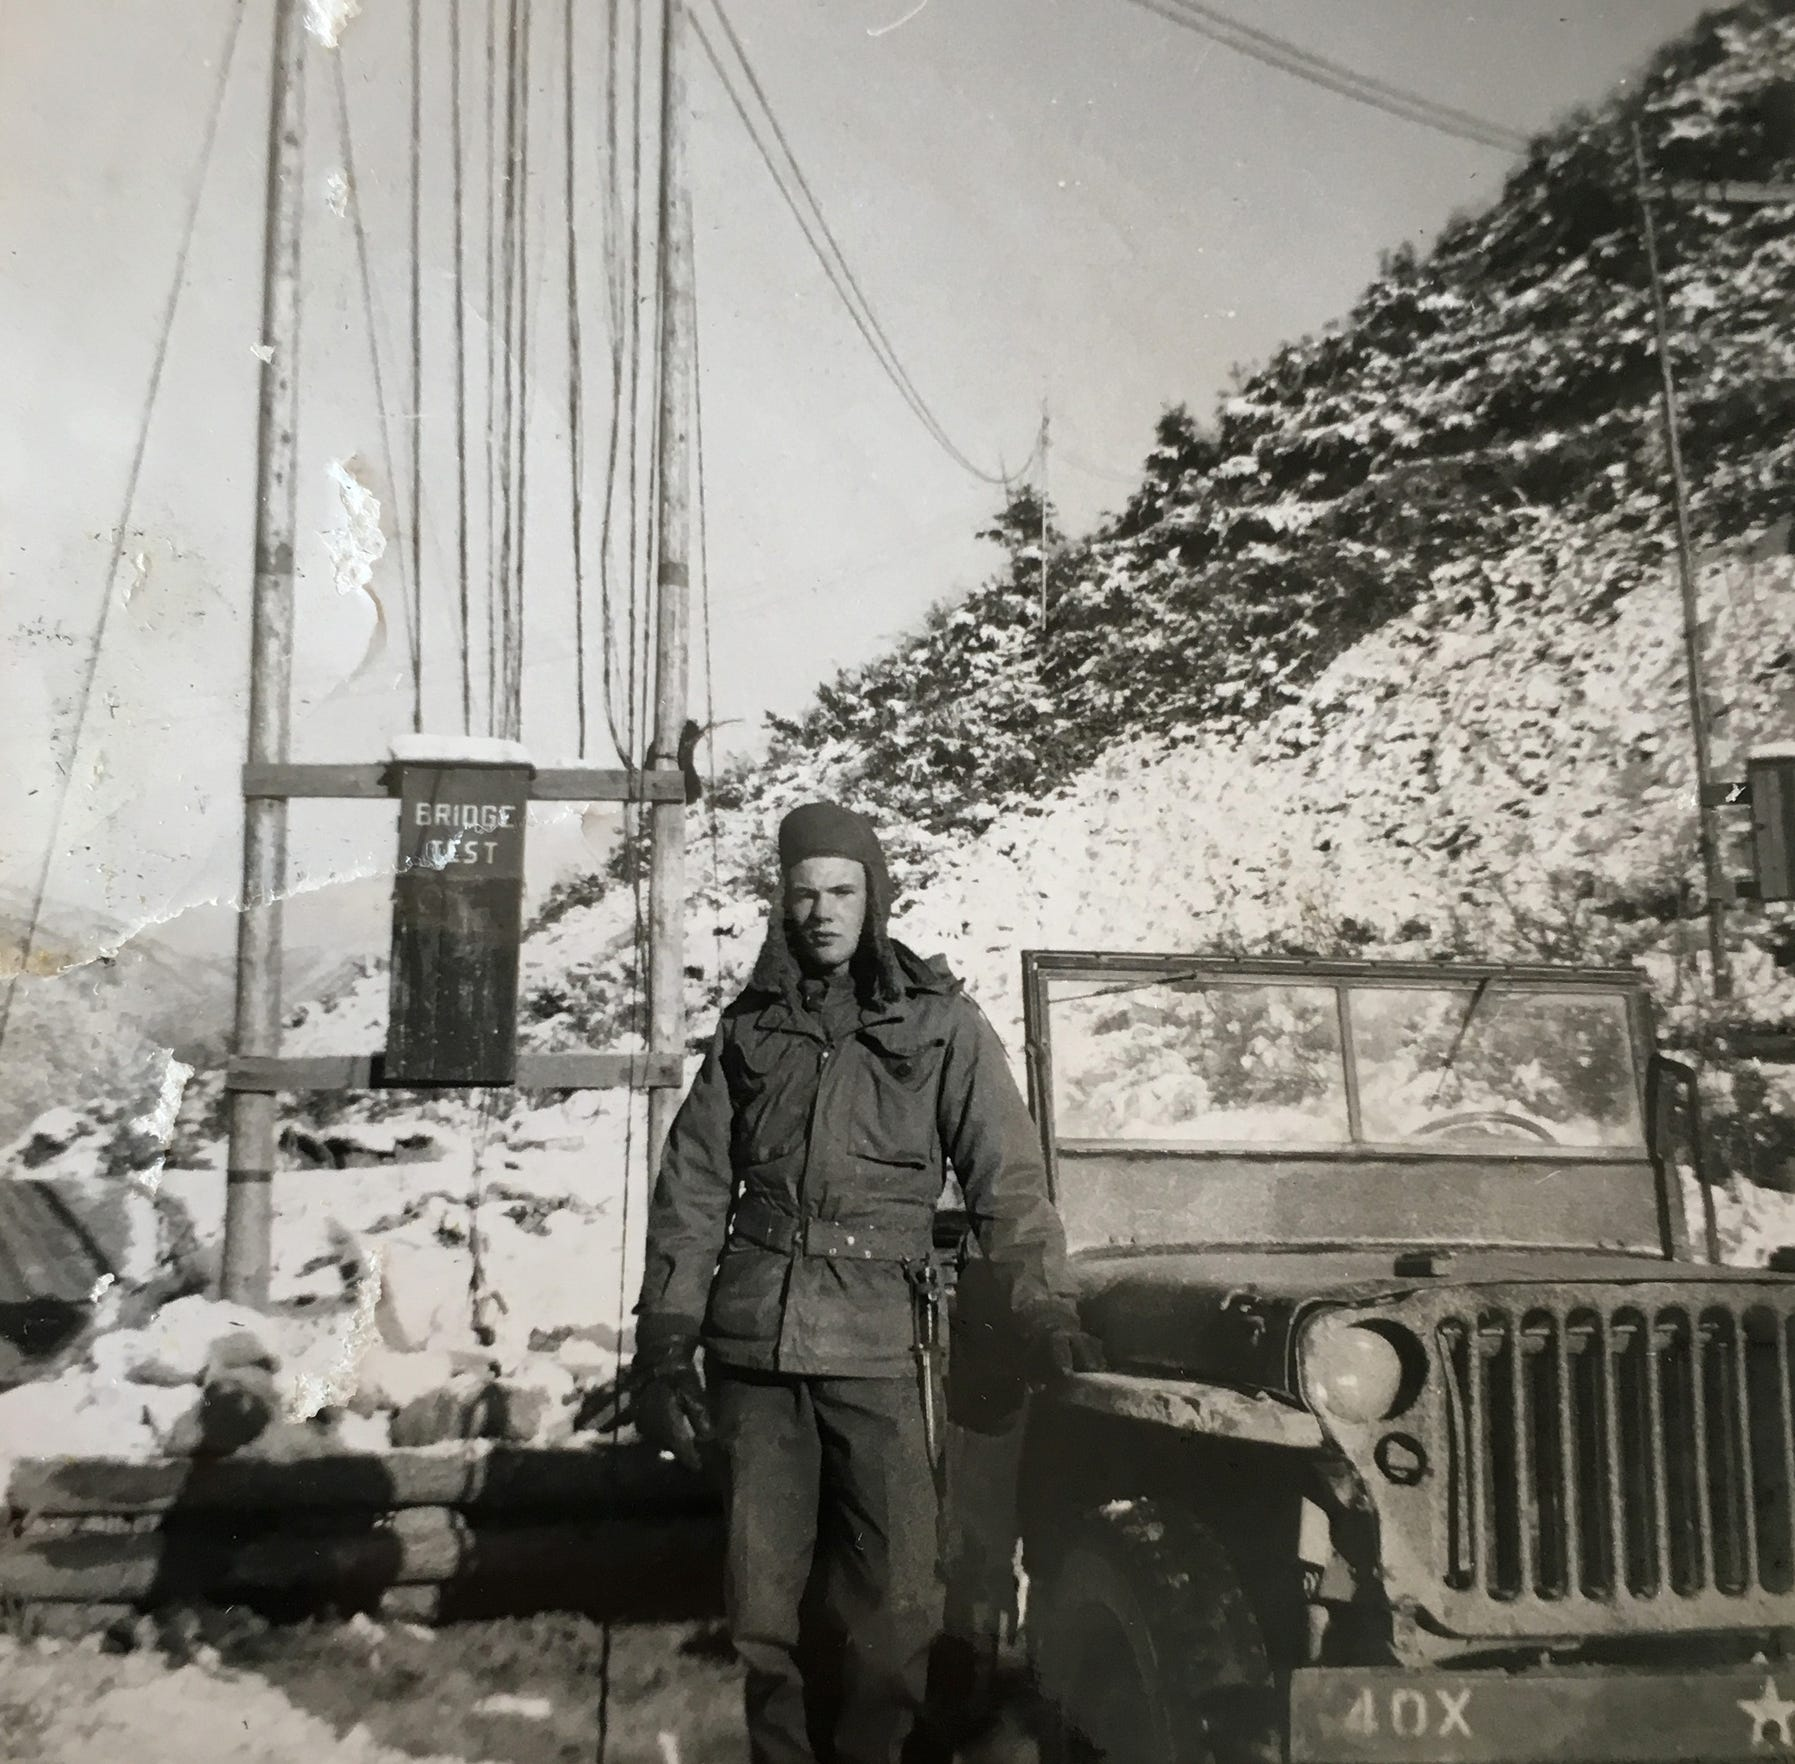 """Edward Foose served as a pole lineman, stringing phone and teletype lines in full view of enemy soldiers who shot at him from across the 38th Parallel. """"""""They had fun using us as targets,"""" Foose said."""